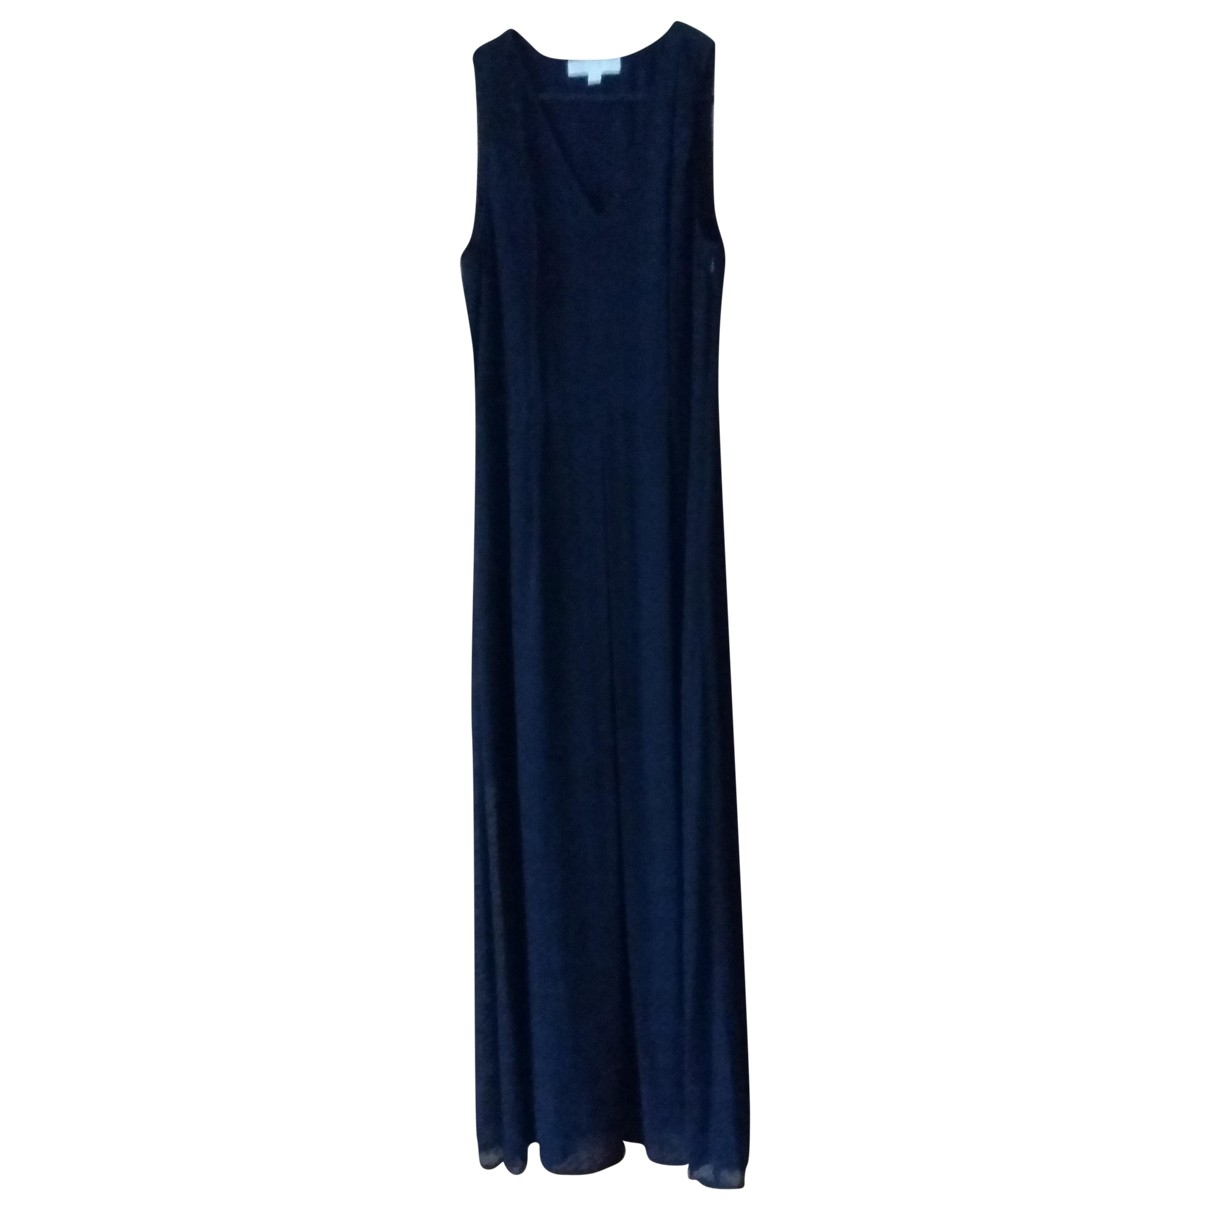 Michael Kors \N Kleid in  Marine Polyester